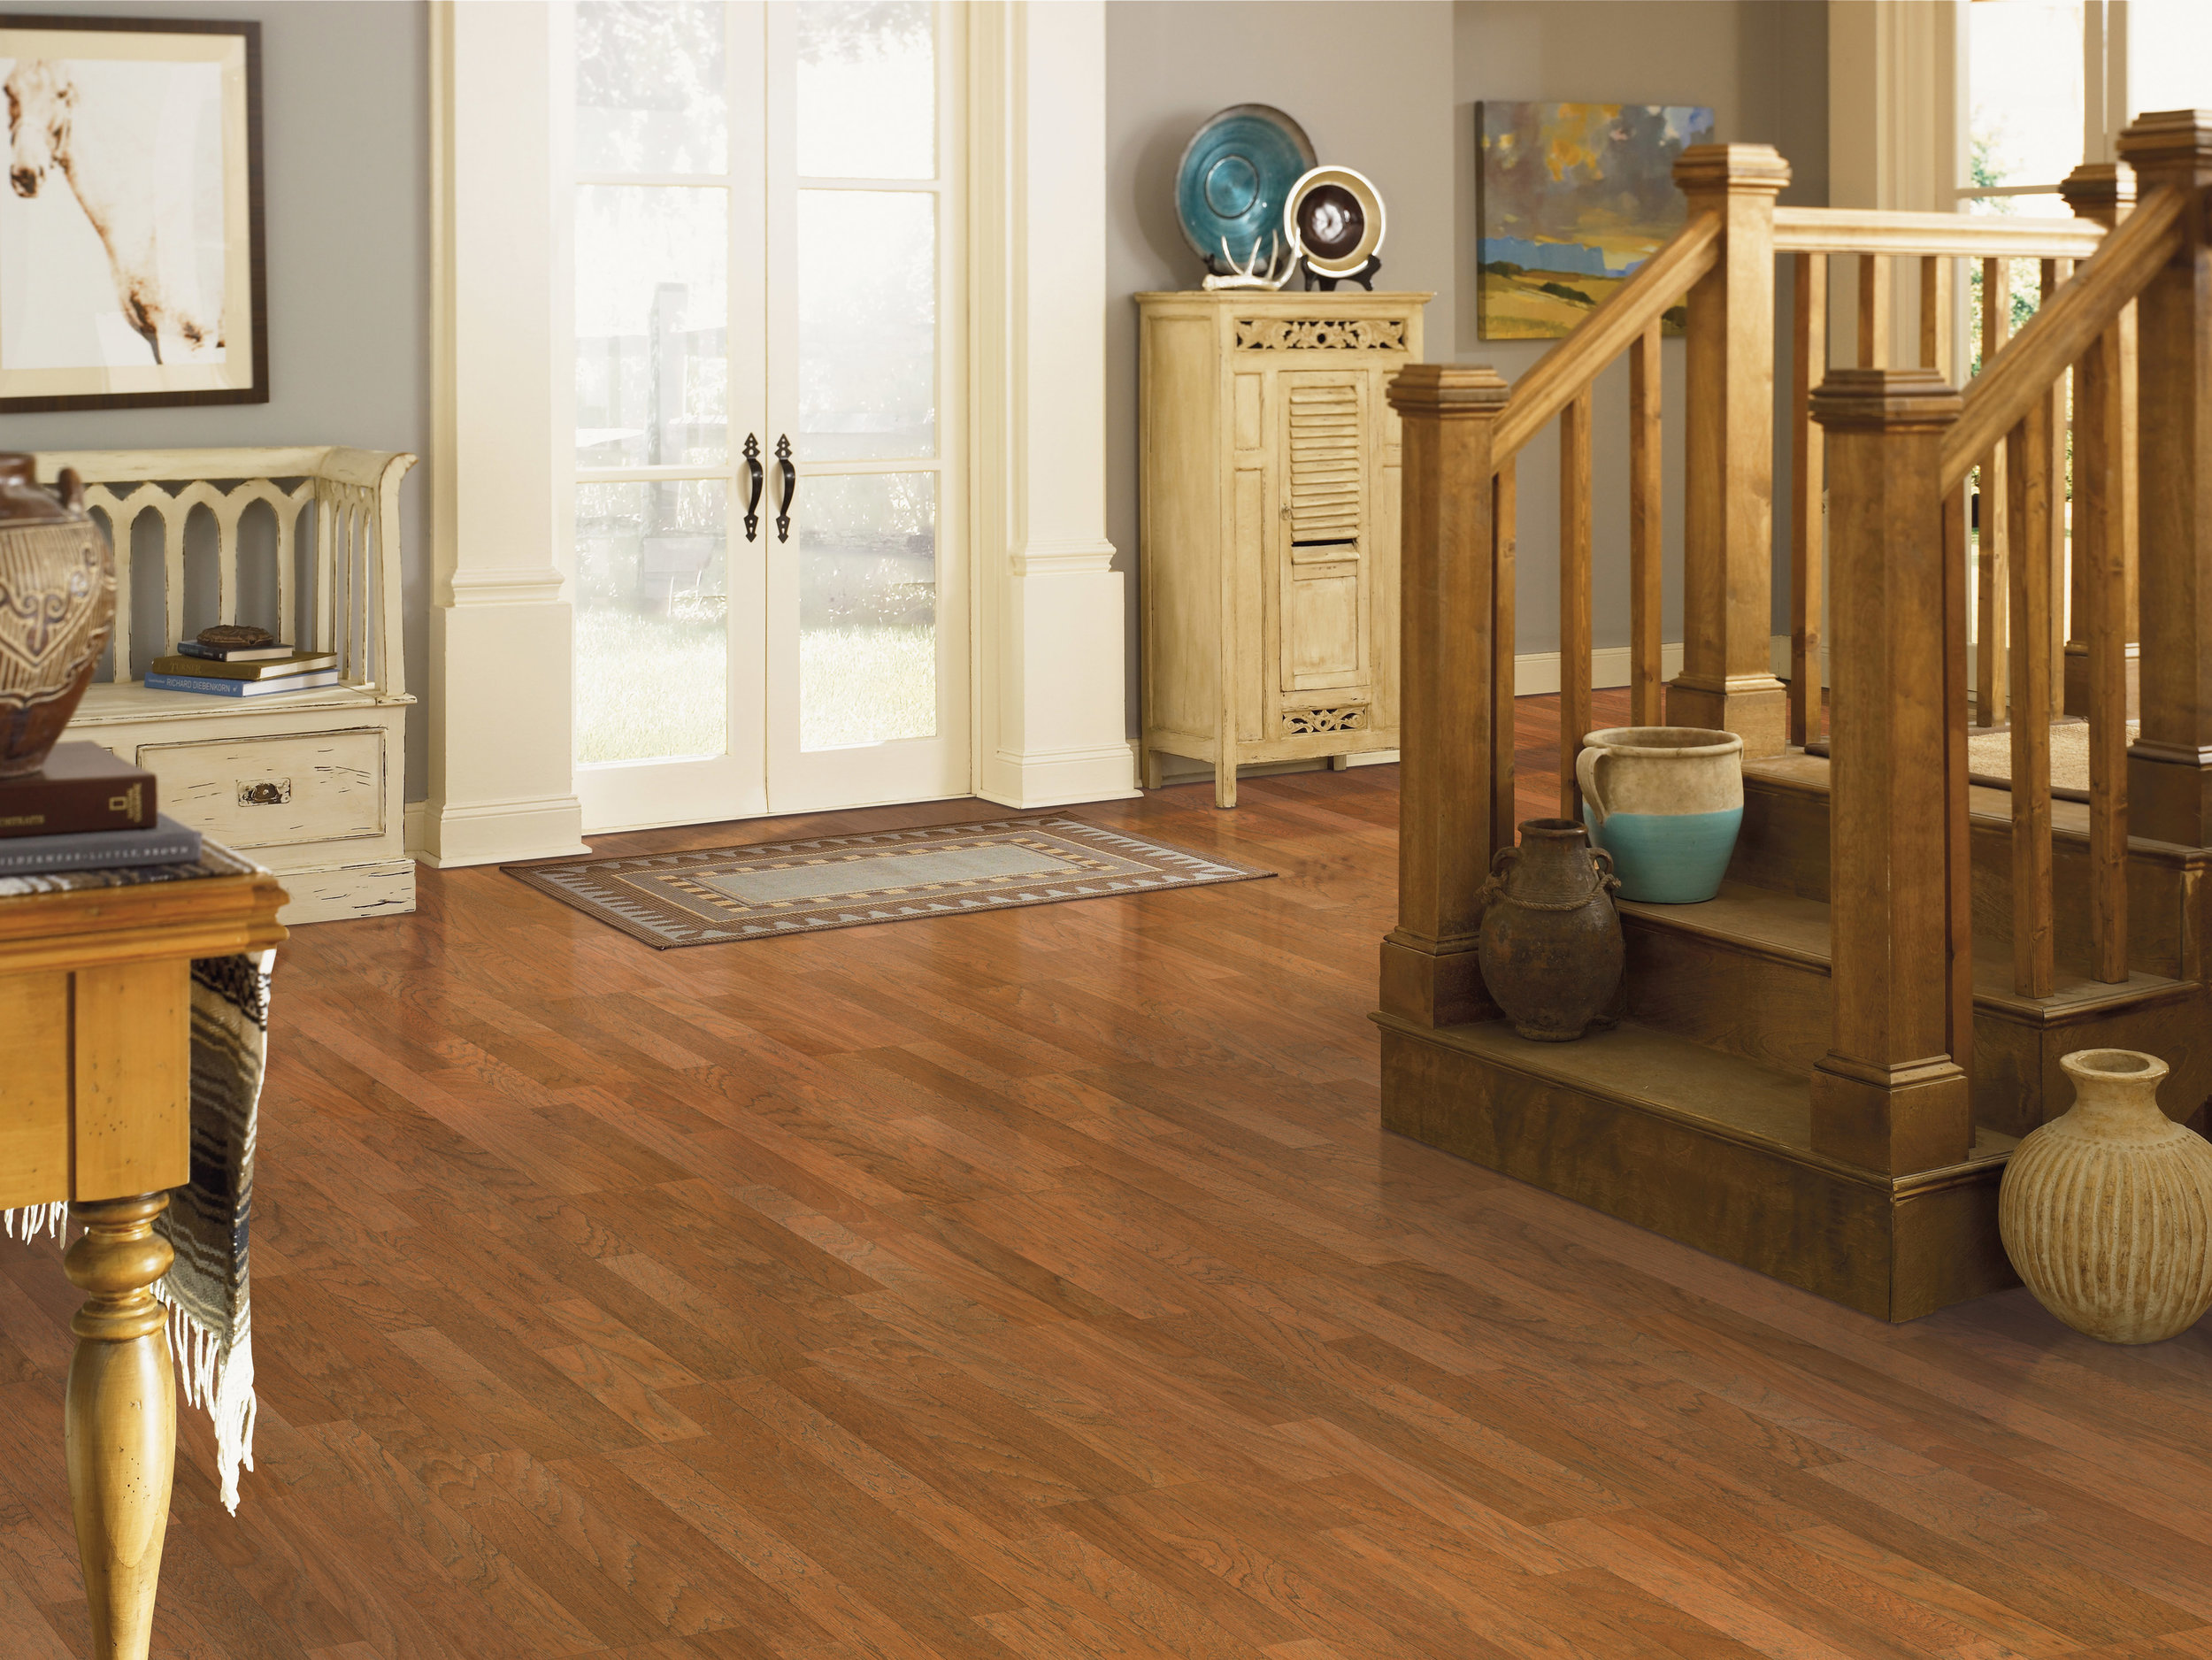 Luxury Vinyl Tile Flooring is Affordable on any budget